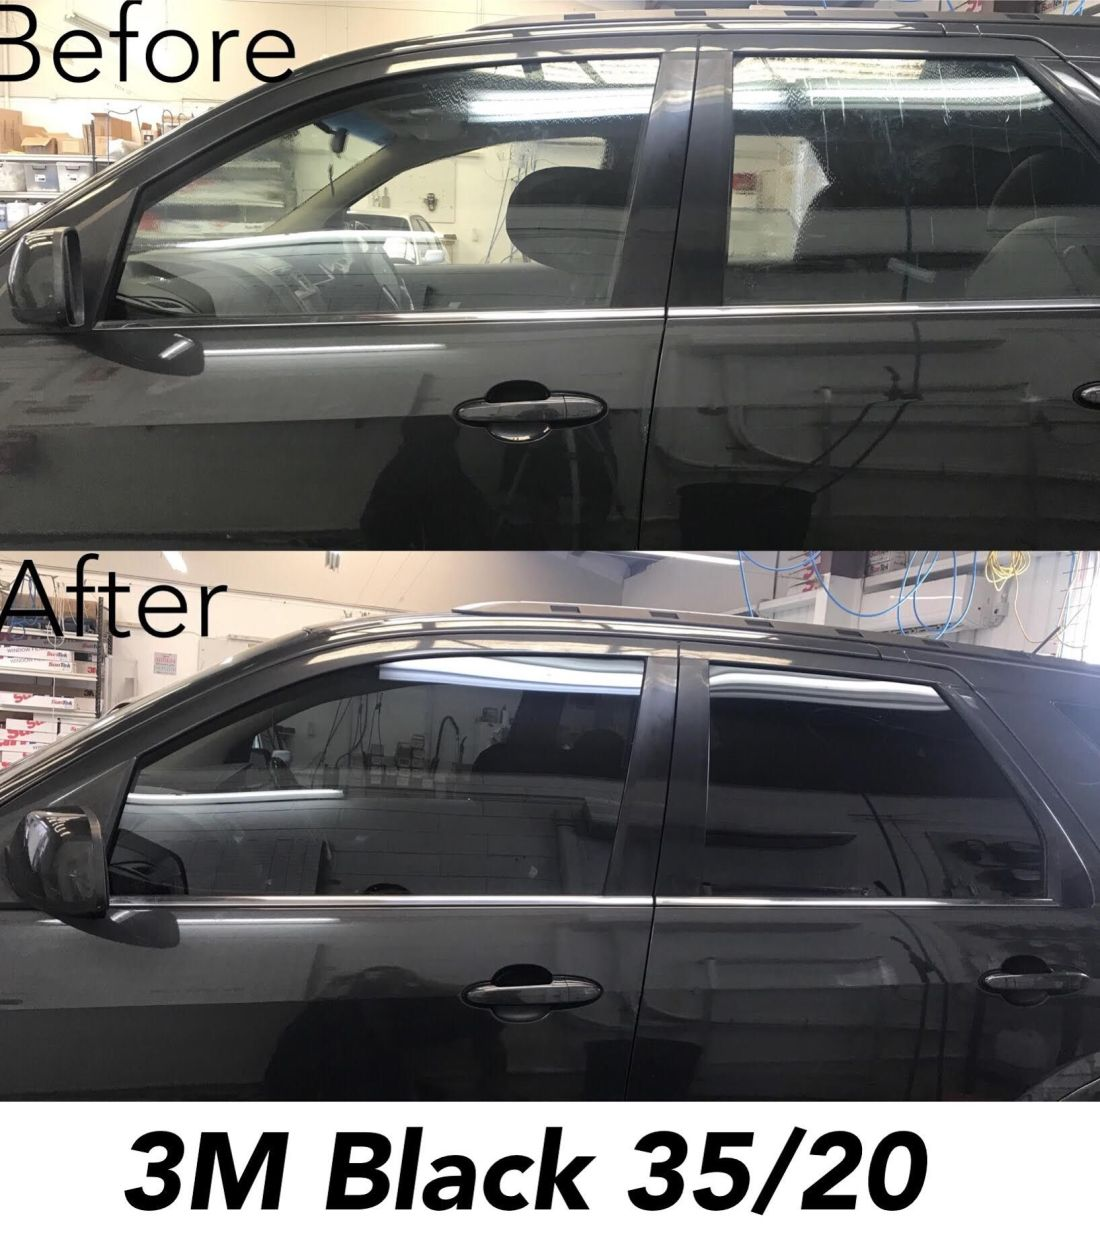 how much does it cost to tint car windows ireland